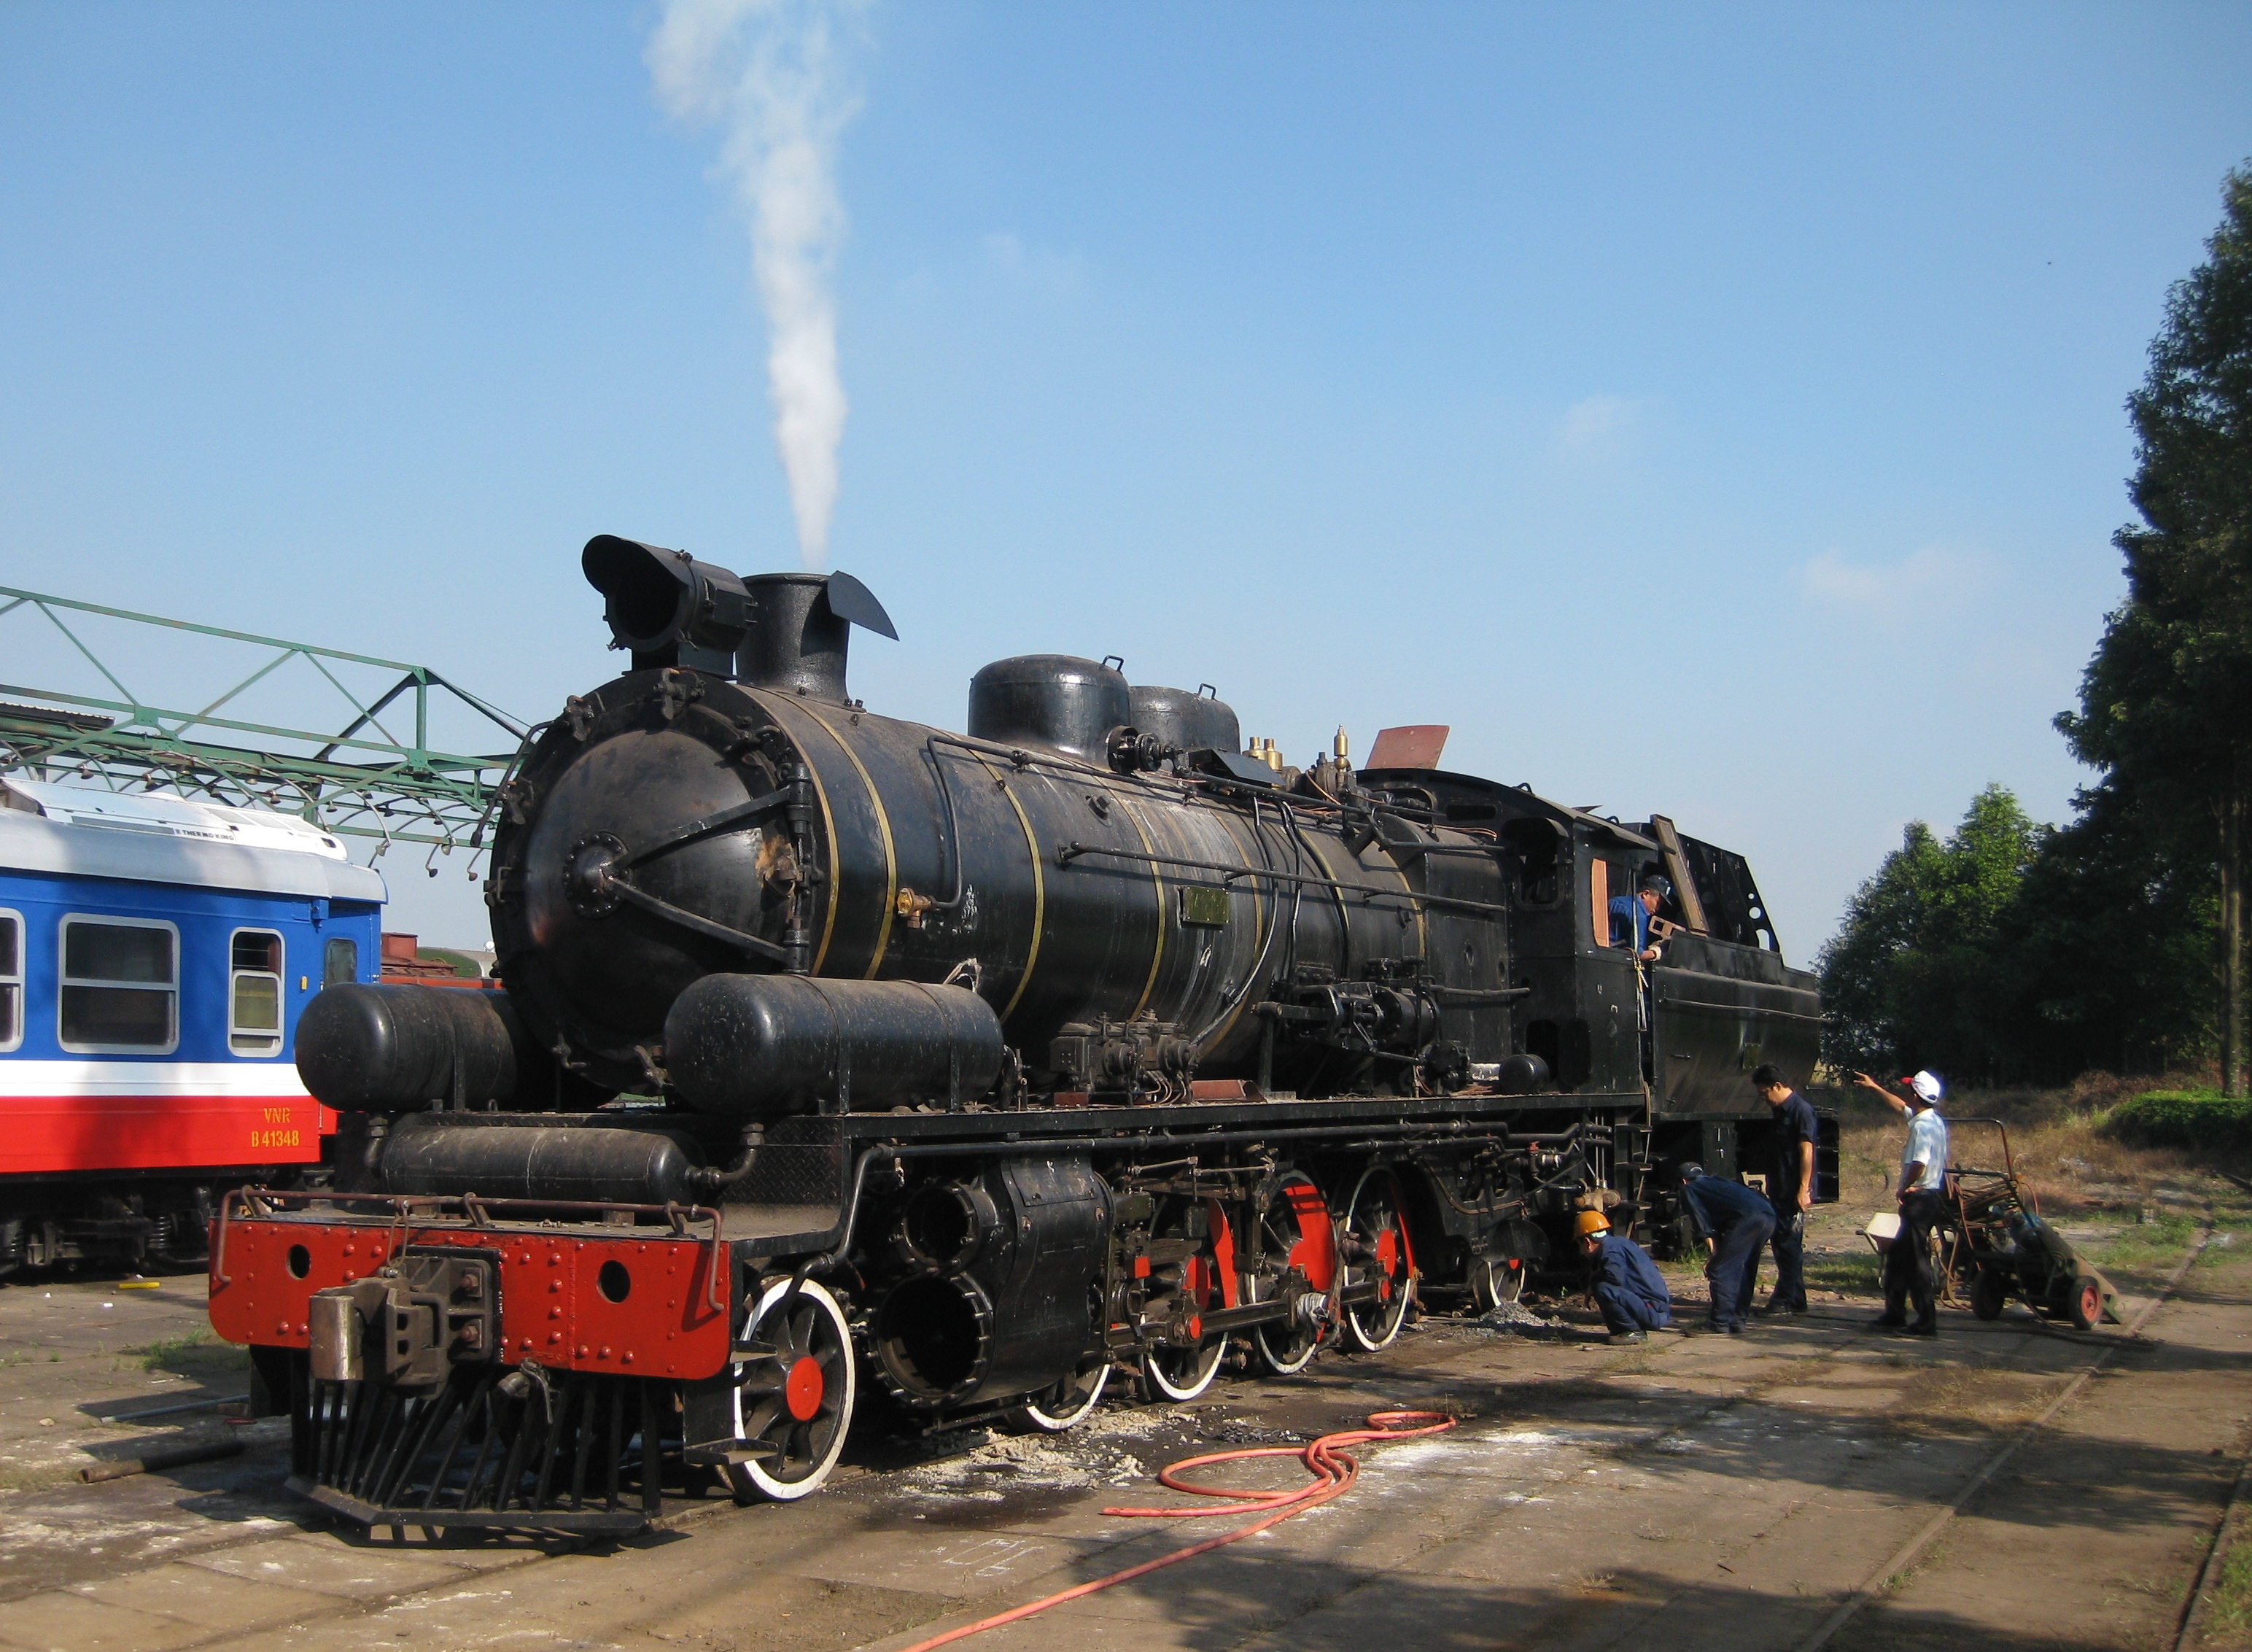 Vietnam's first steam locomotive brought back to life